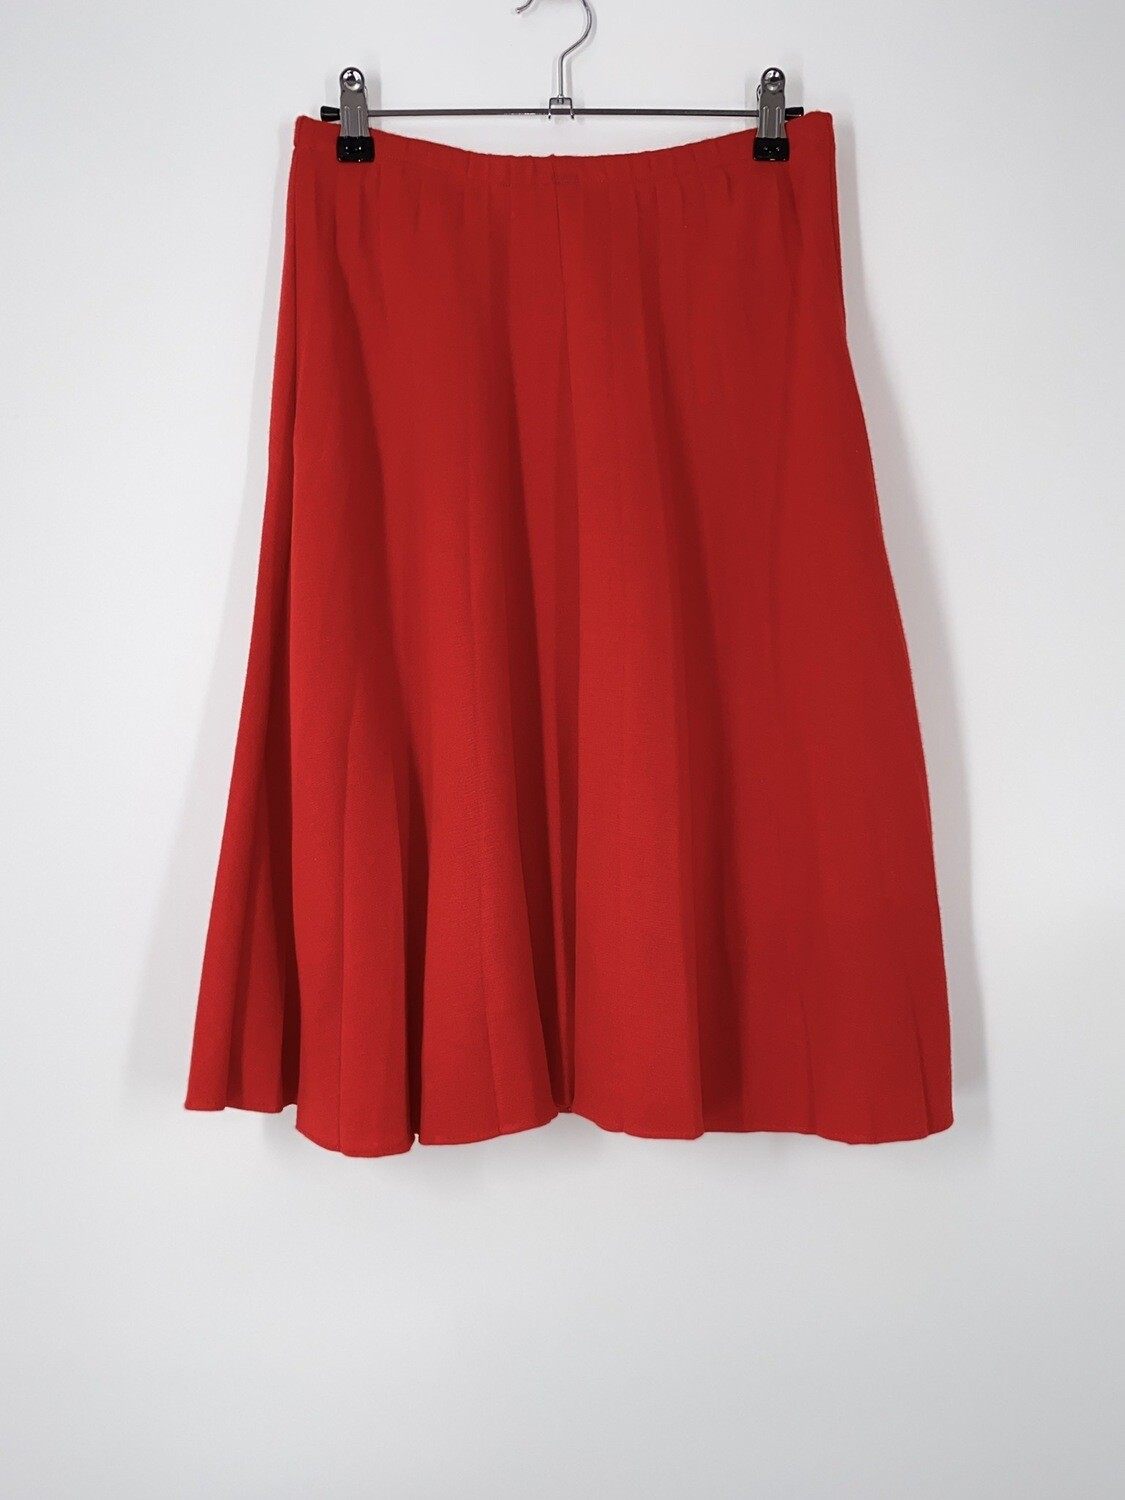 Red Pleated Stretchy Skirt Size M